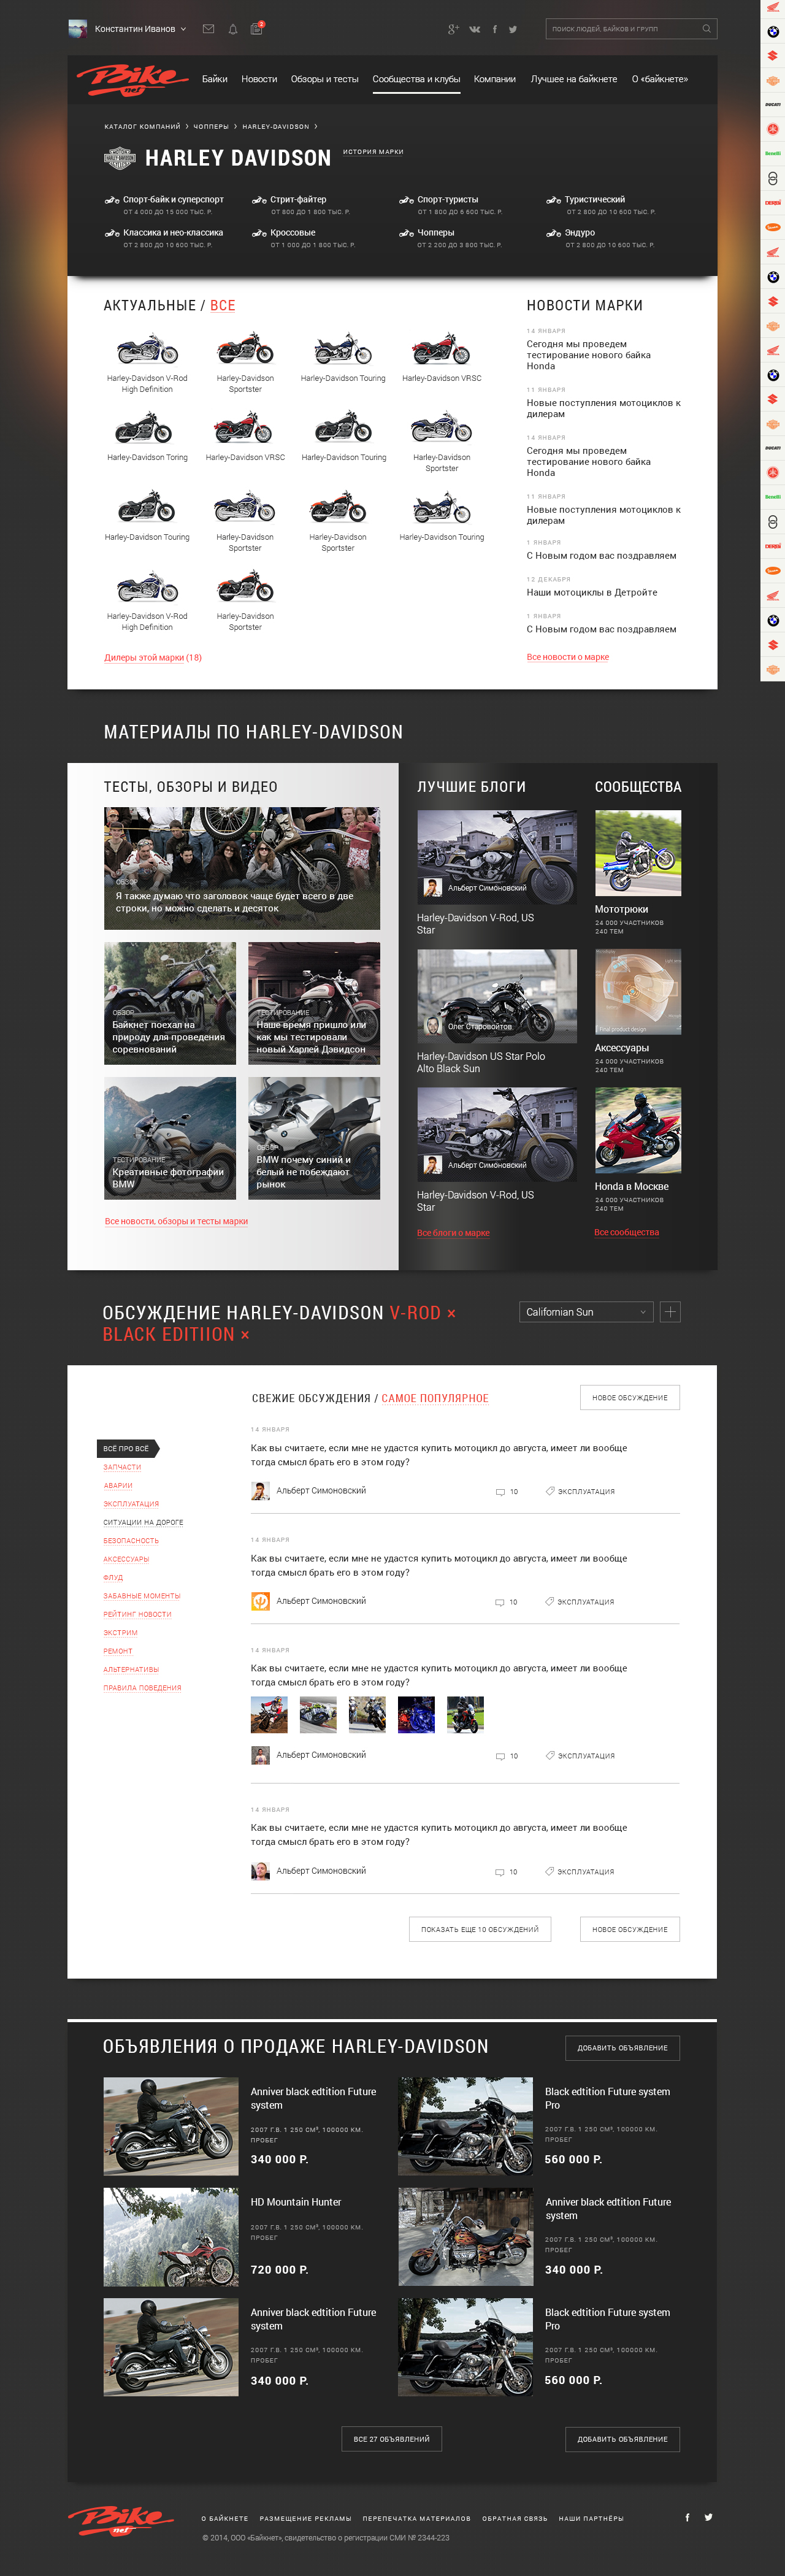 brand_page